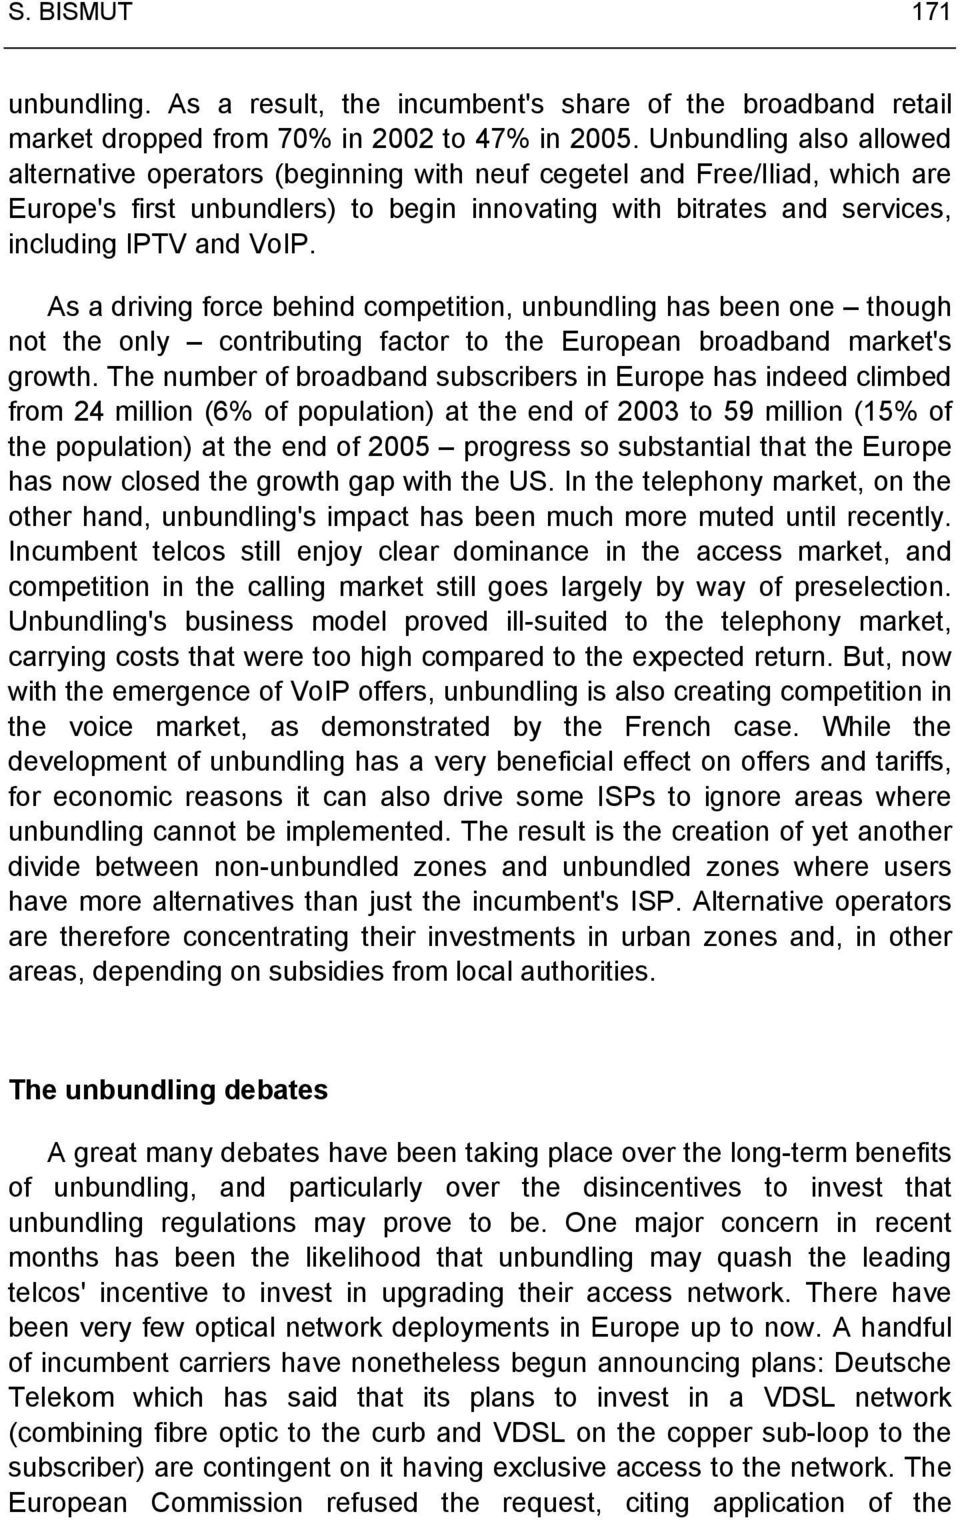 As a driving force behind competition, unbundling has been one though not the only contributing factor to the European broadband market's growth.